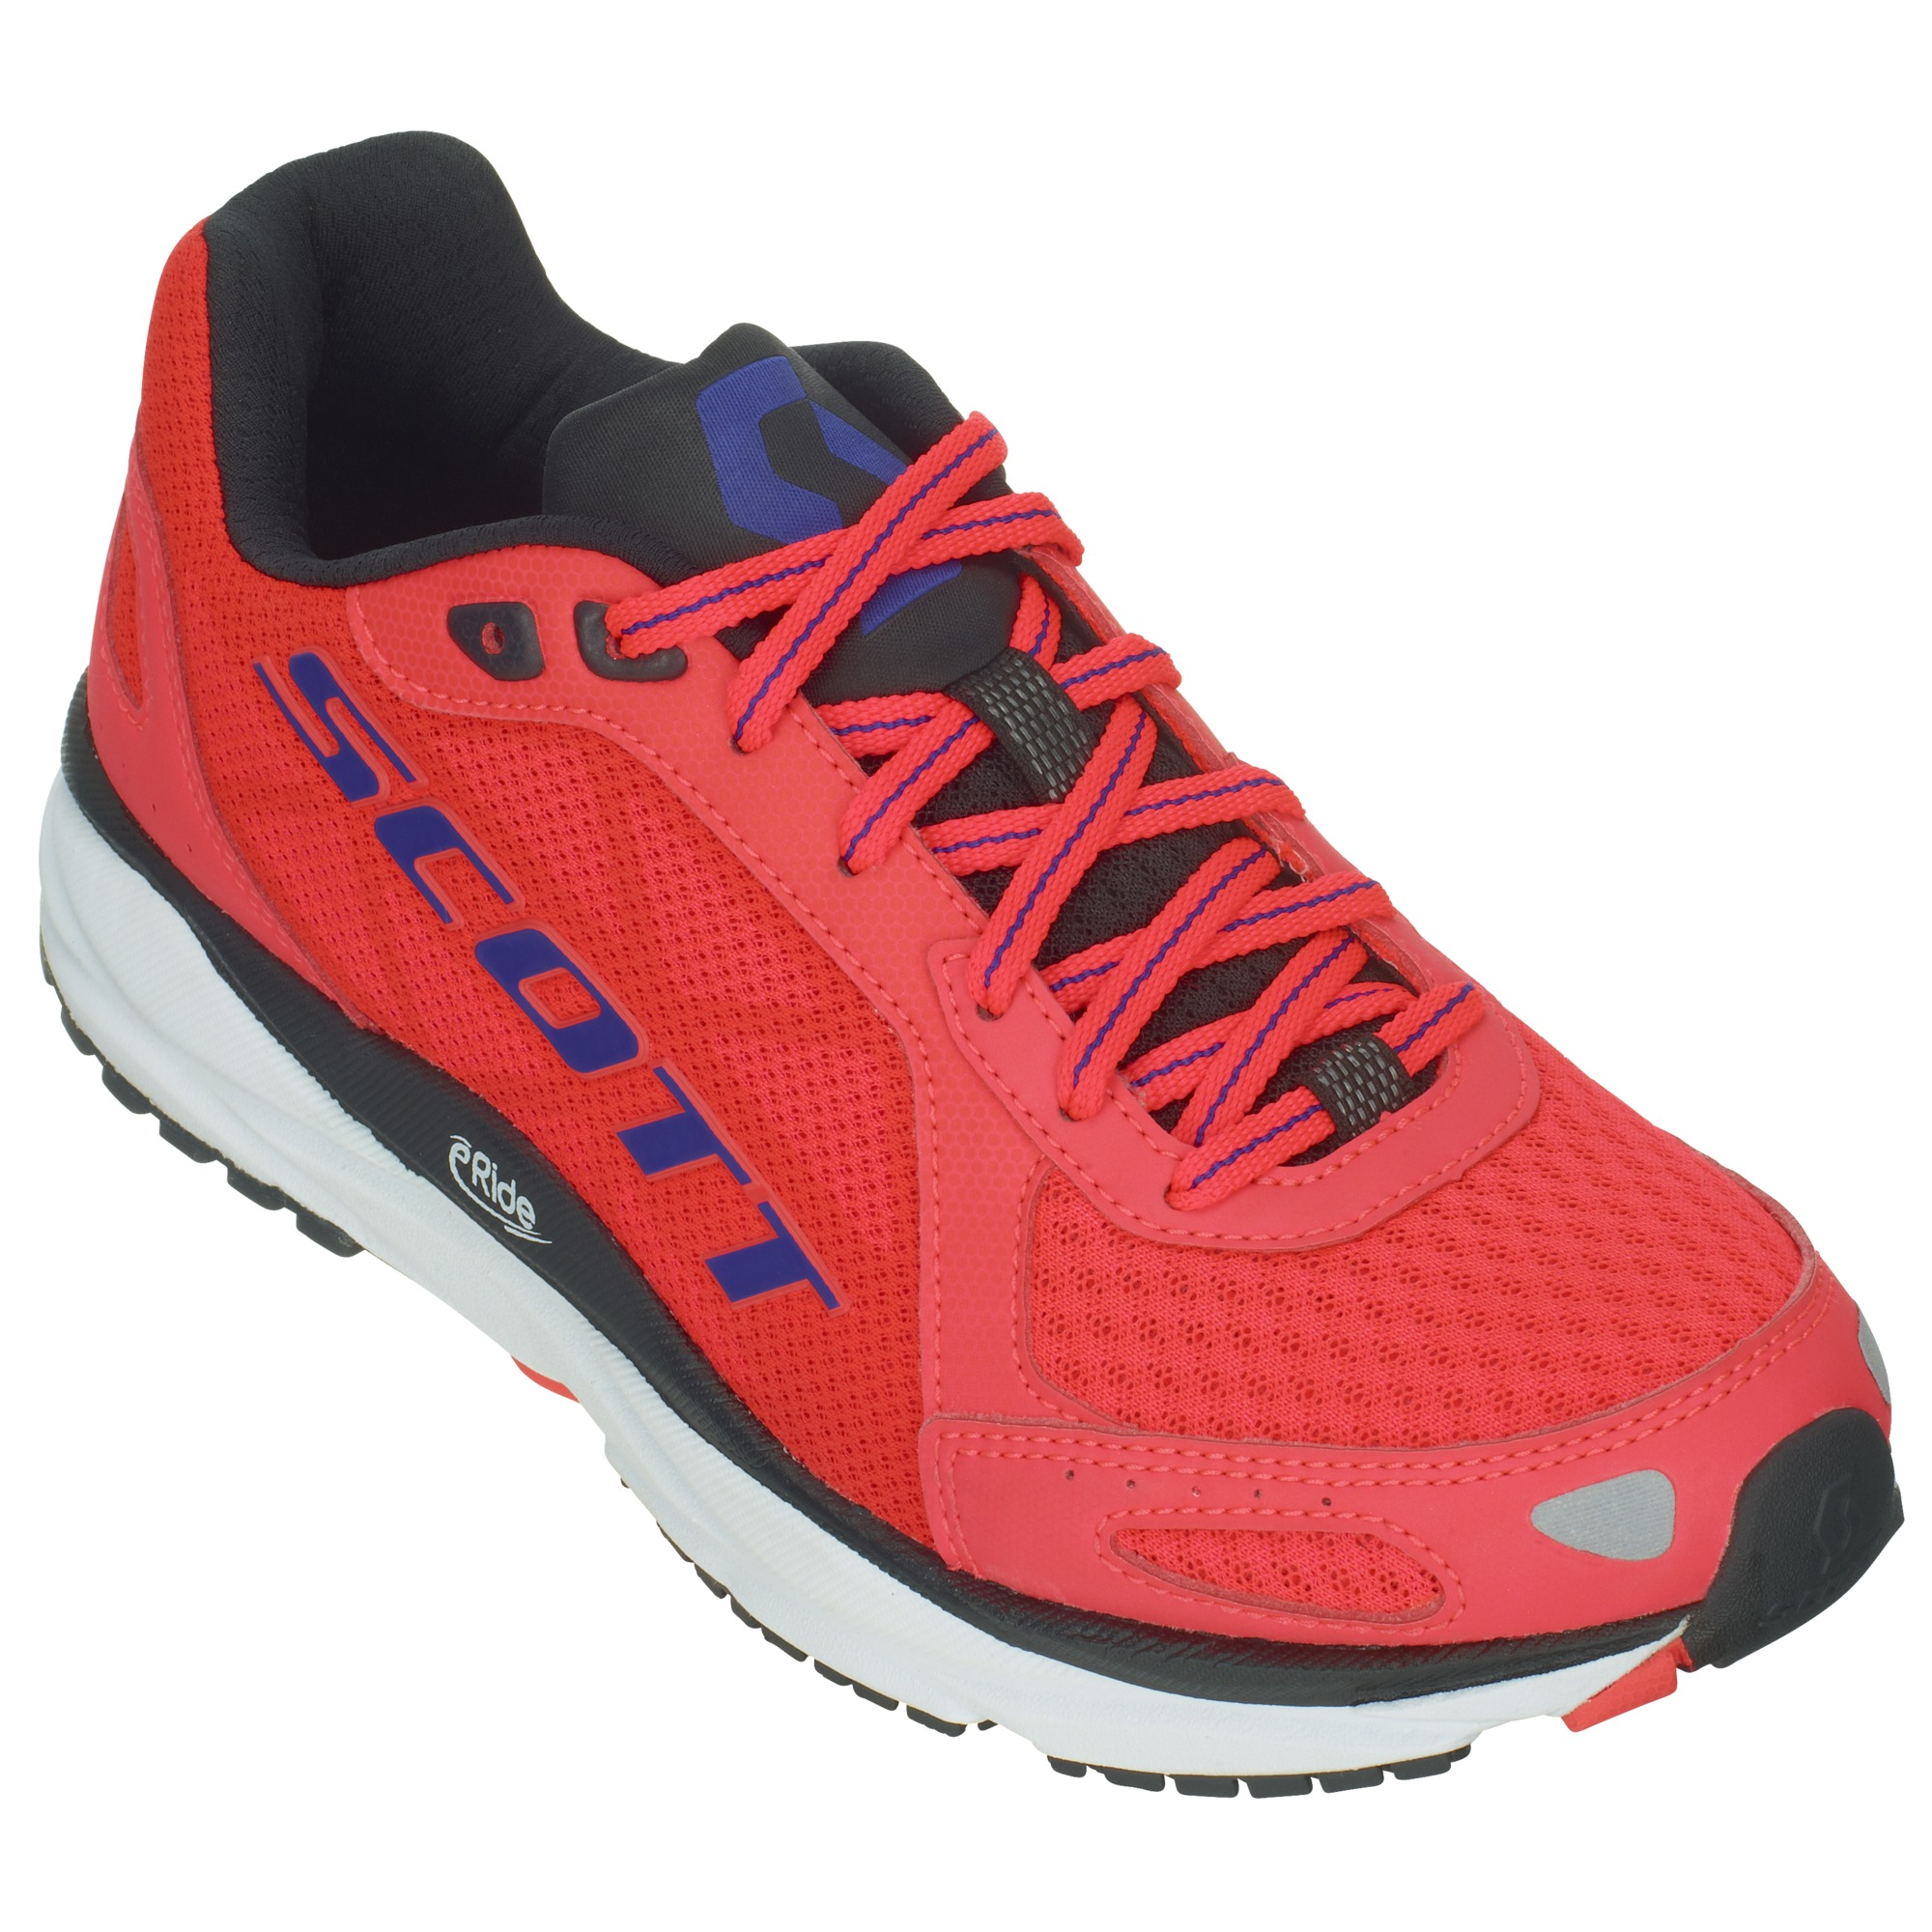 SCOTT Palani Trainer Women's Shoe